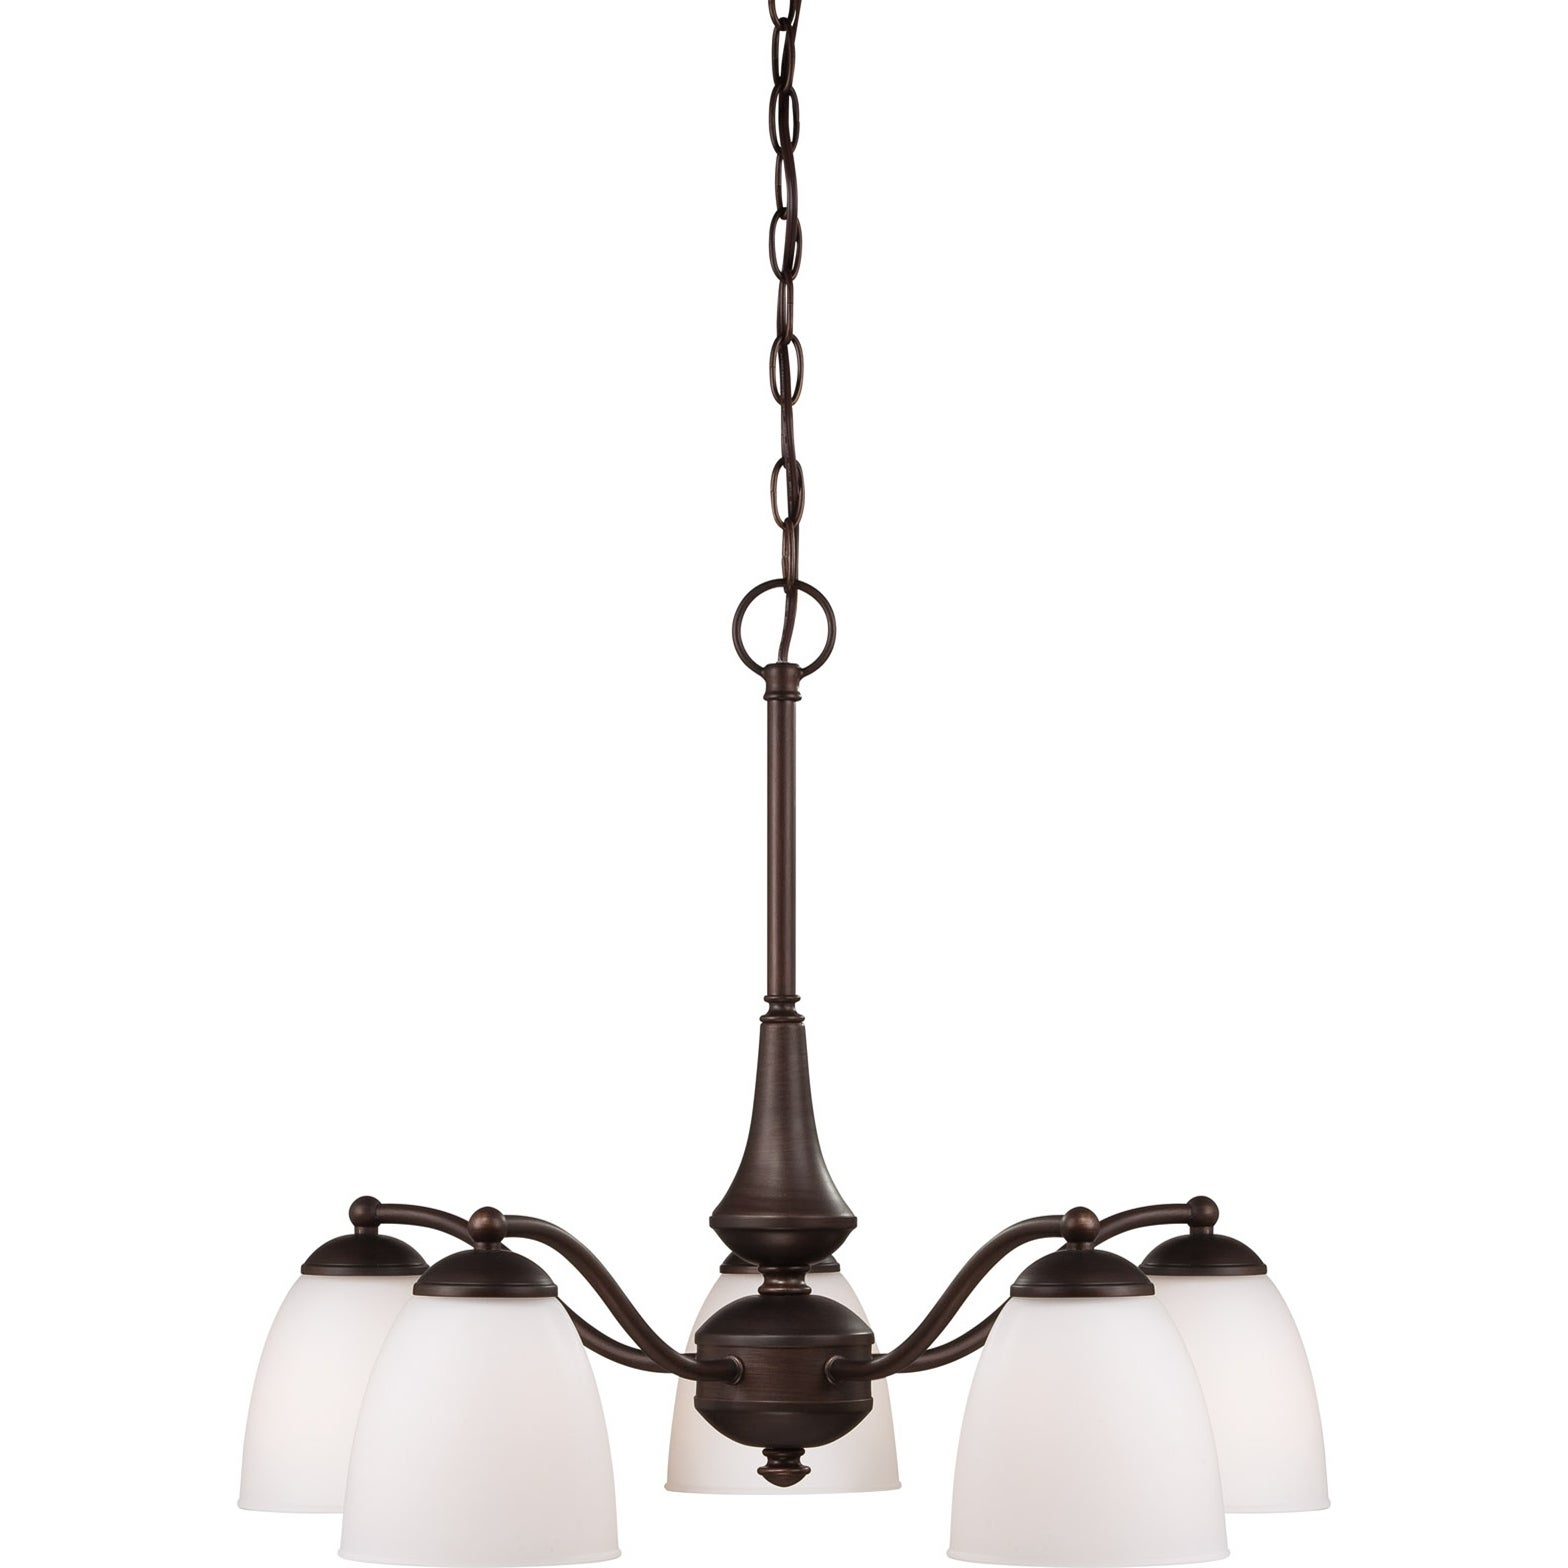 Nuvo Patton 5-light Prairie Bronze Chandelier